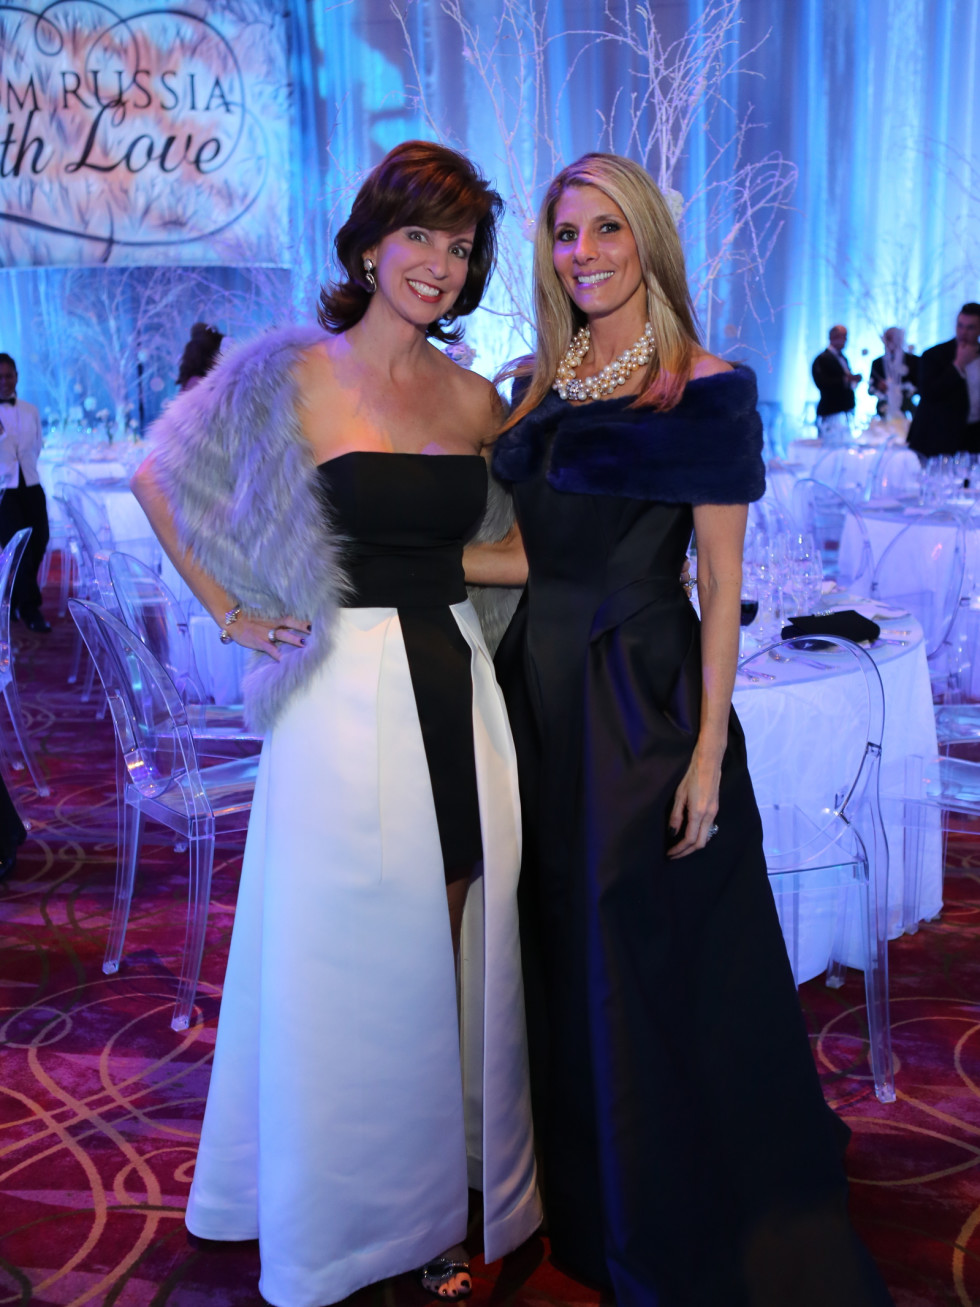 Houston Ballet Ball, Feb. 2016,  Julie Oliver in Halston, Gina Bhatia in Zac Posen